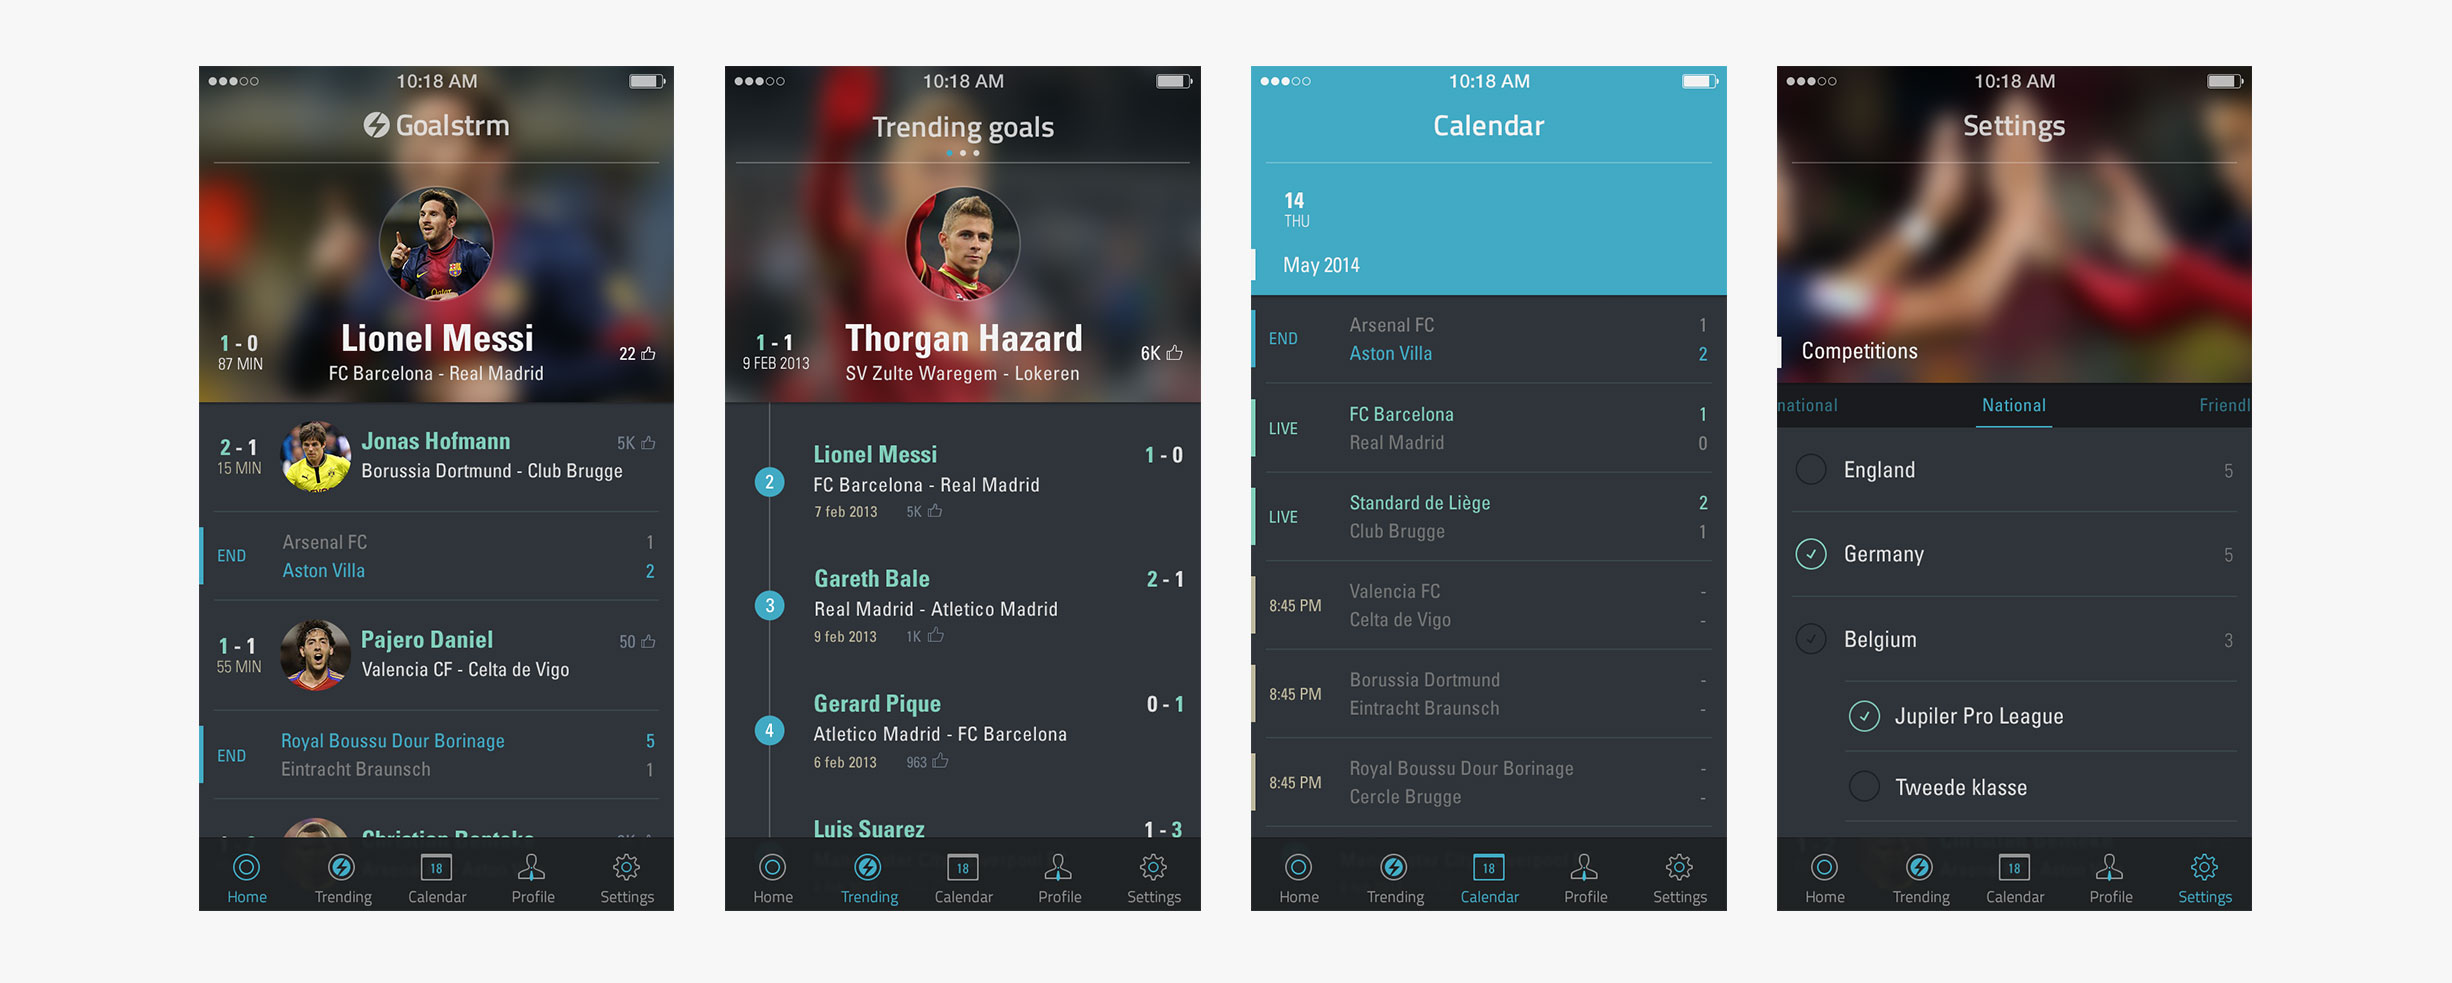 Goalstrm - different screens : dashboard - trending goals - calendar - settings